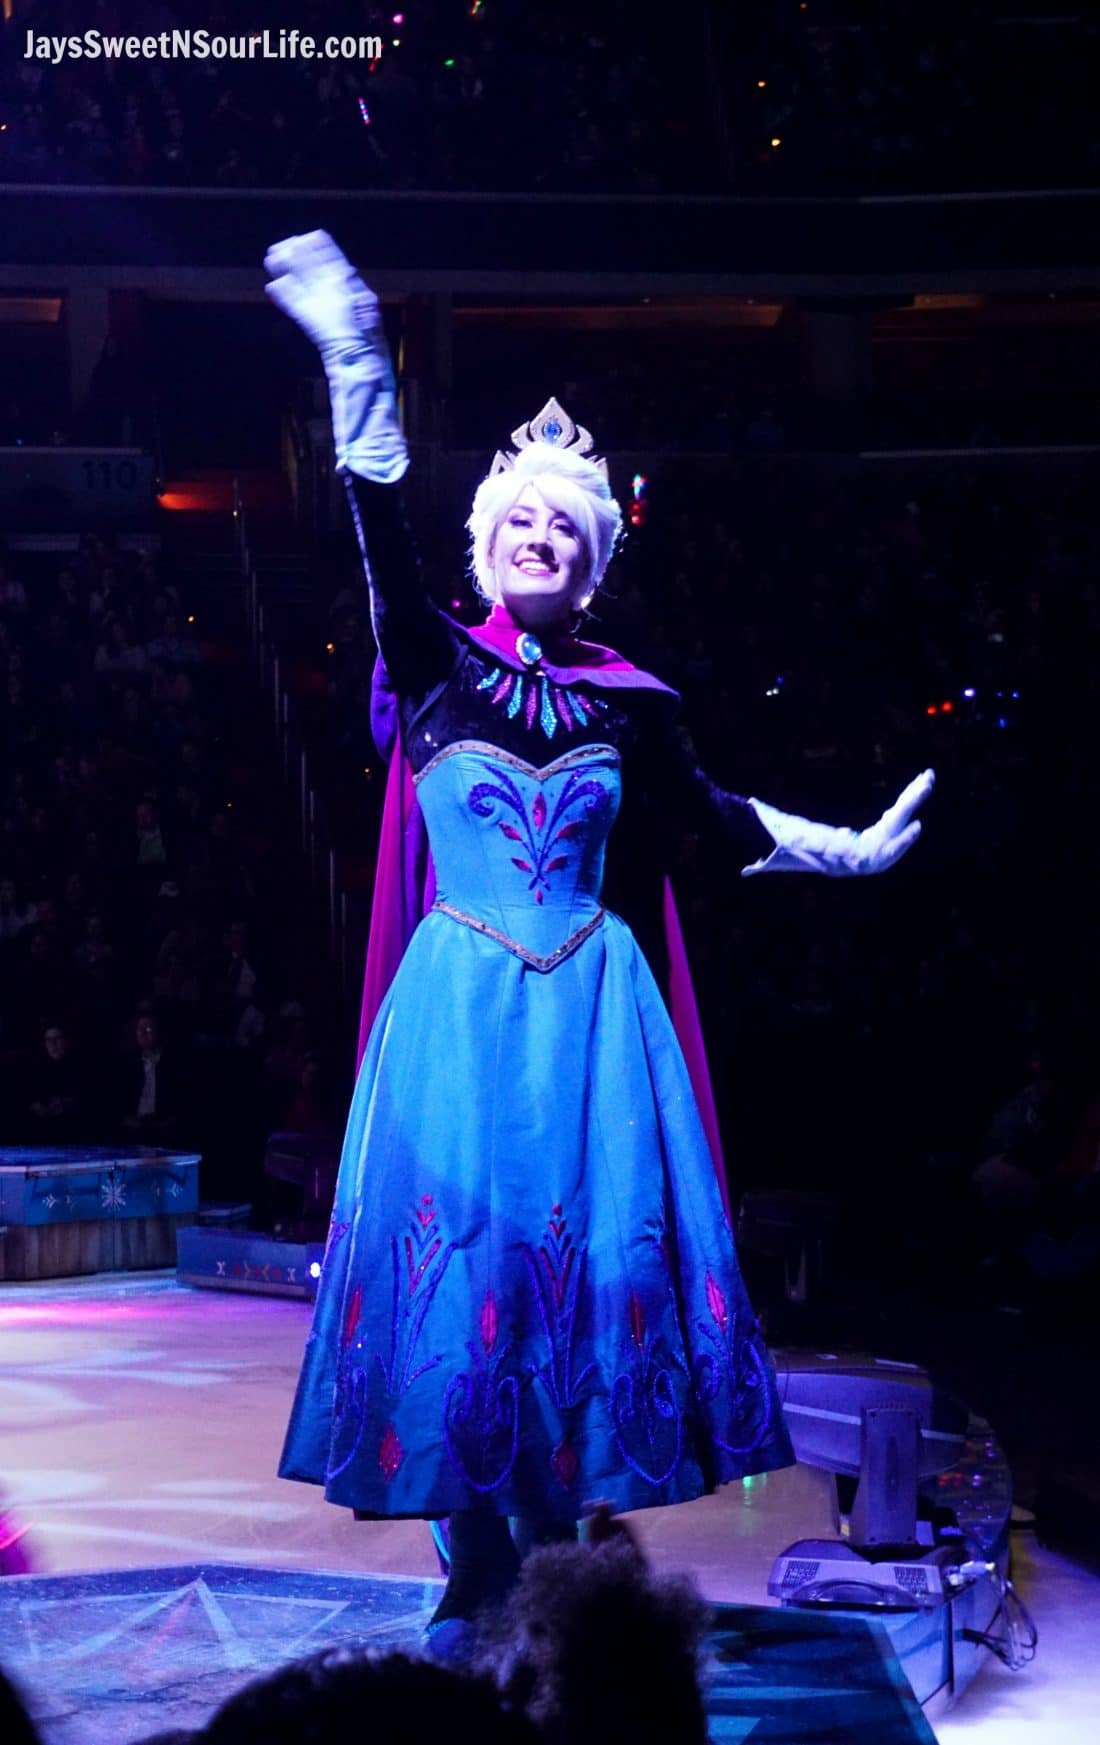 Disney On Ice Presents Frozen coming to a town near you. Elsa waving to her friends in the audience.